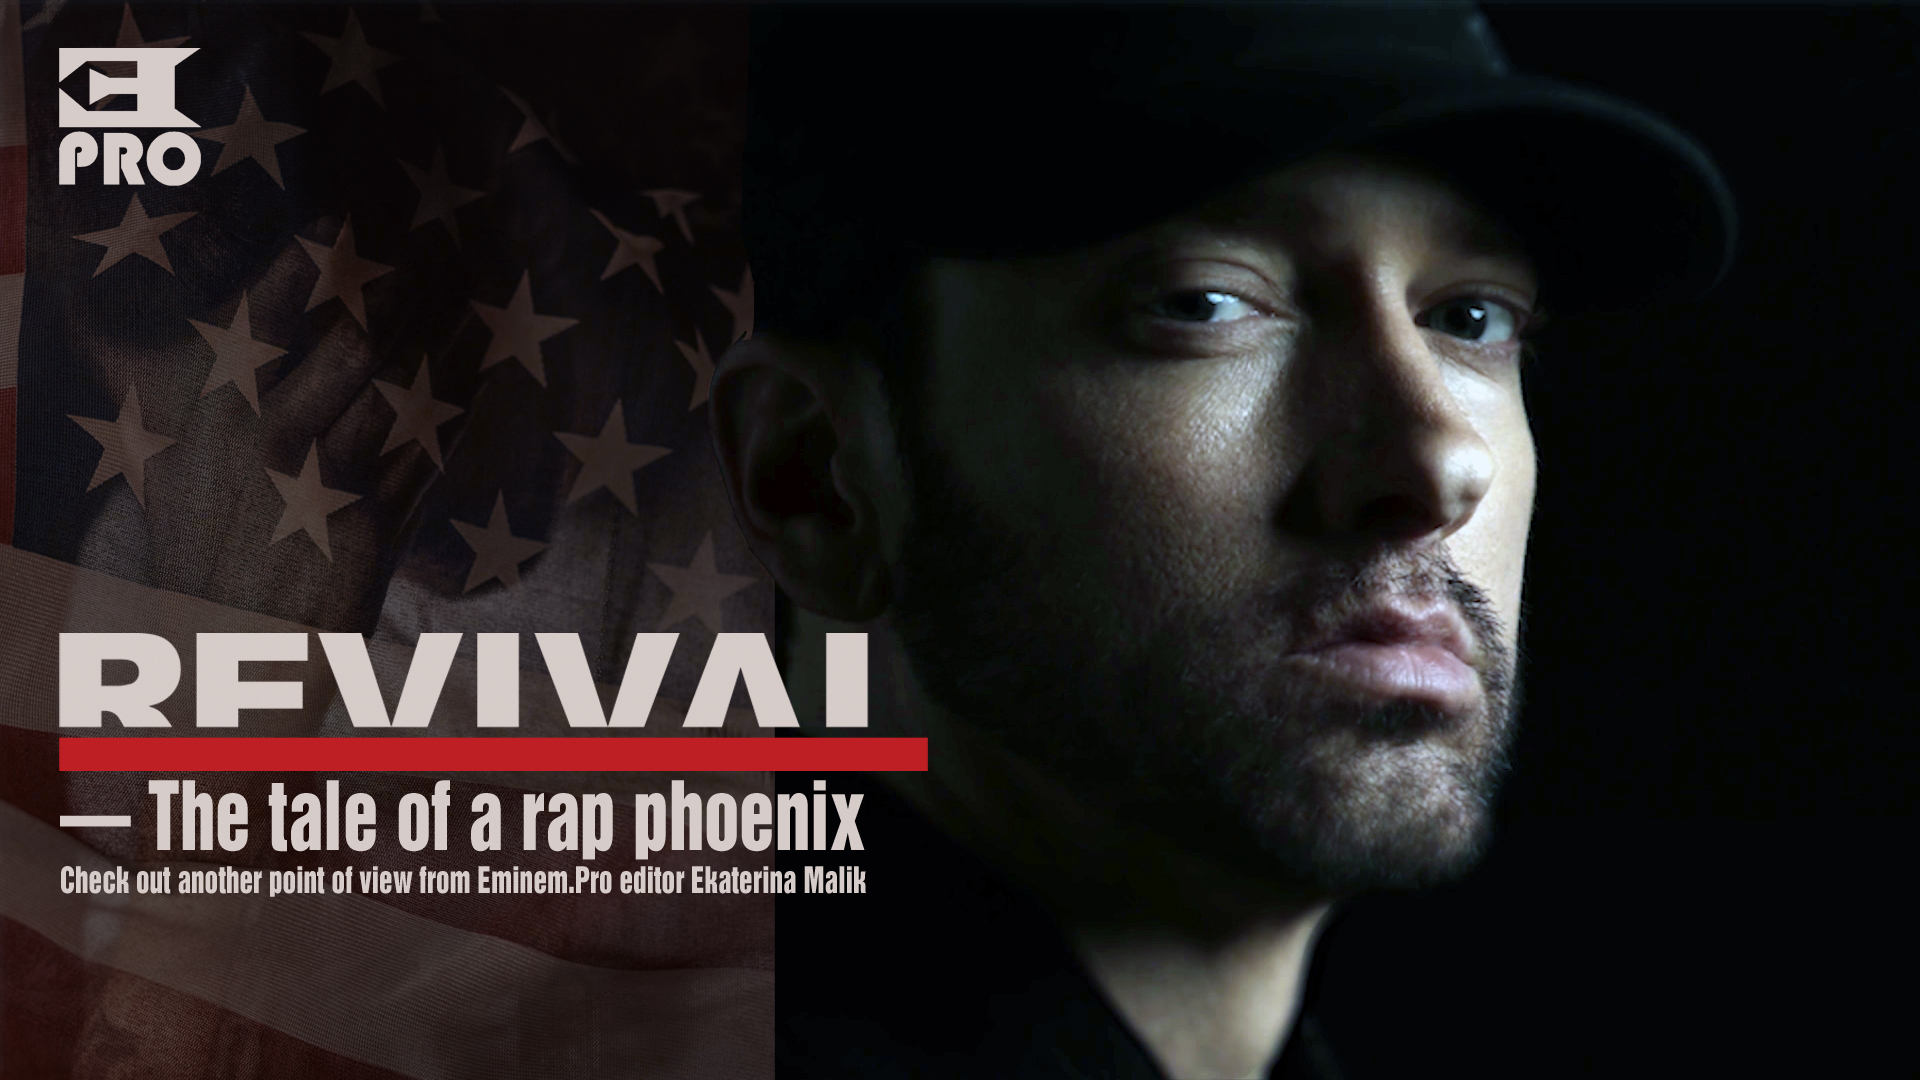 The tale of a rap phoenix - Revival. Antoher review from Eminem.Pro